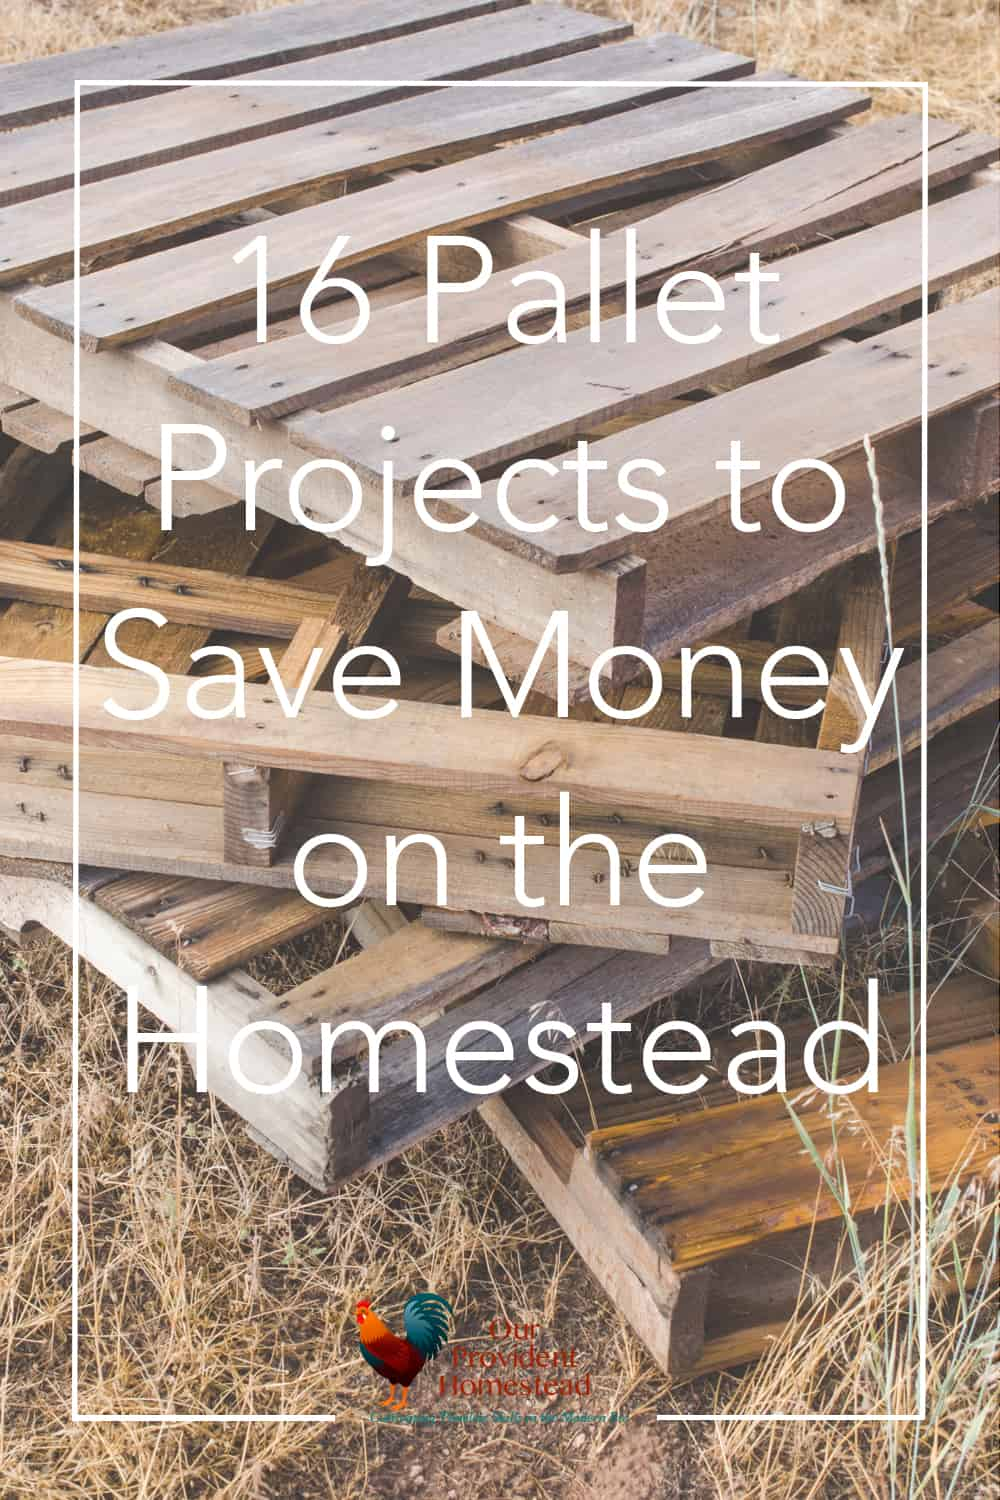 Do you love recycling old stuff to make new stuff? Click here to see how fun making pallet projects can add fun and functionality to your homestead. Pallet Projects | Homesteading | Pallet Furniture